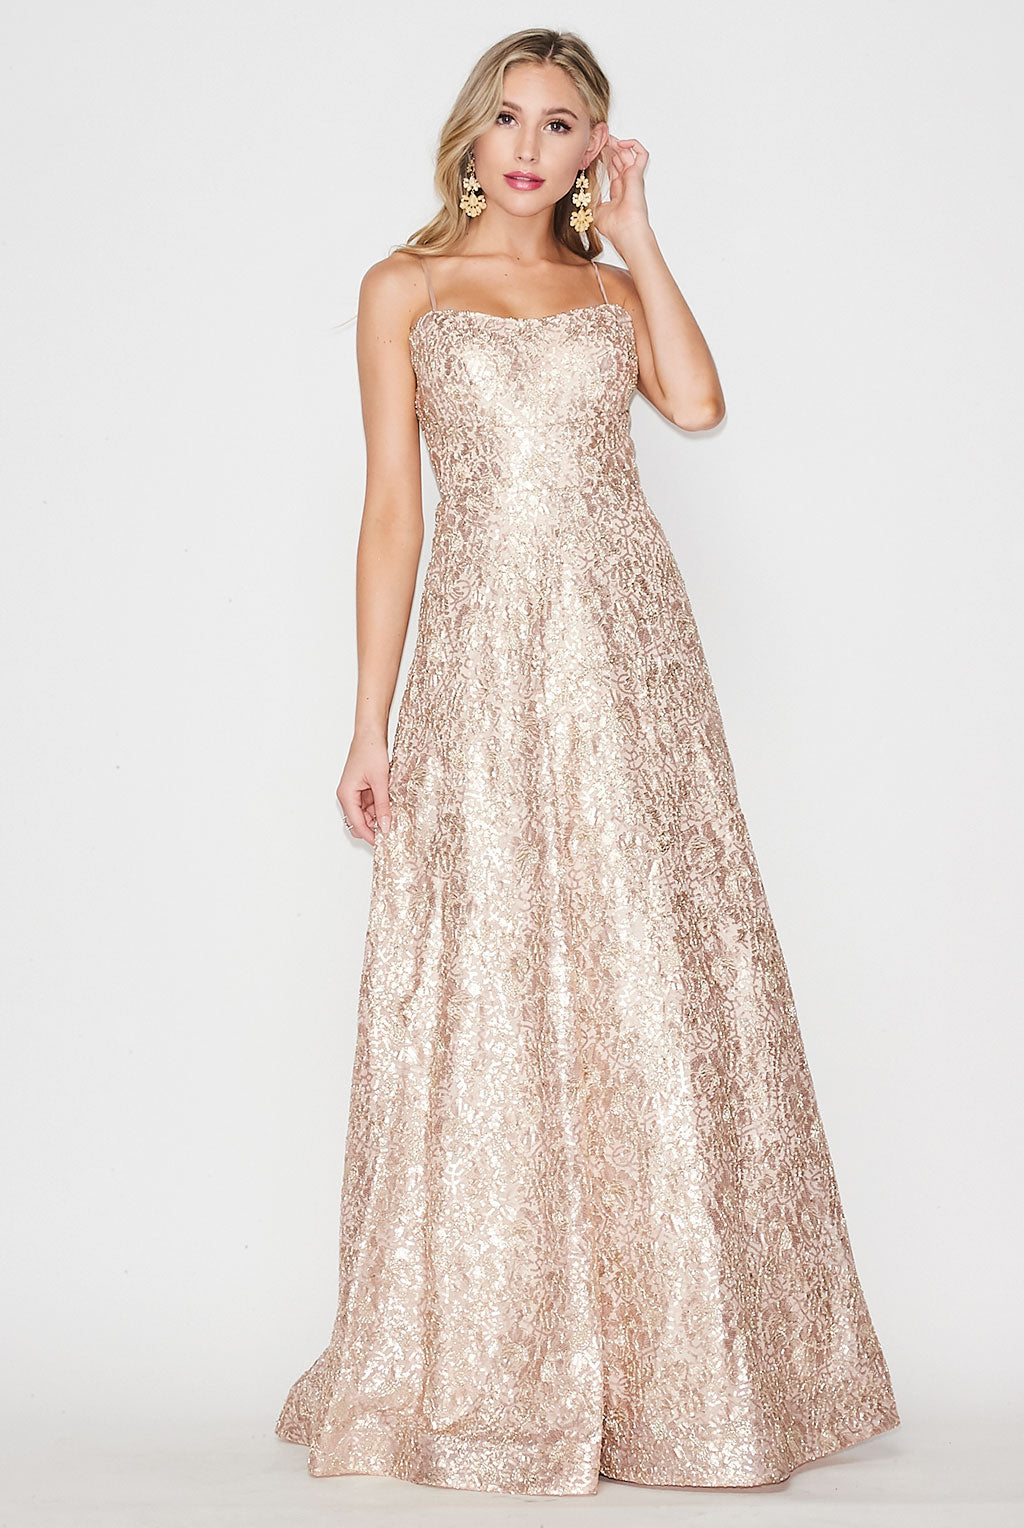 Teeze Me | Embroidery & Sequin Ball Gown Prom Dress | Gold/Blush